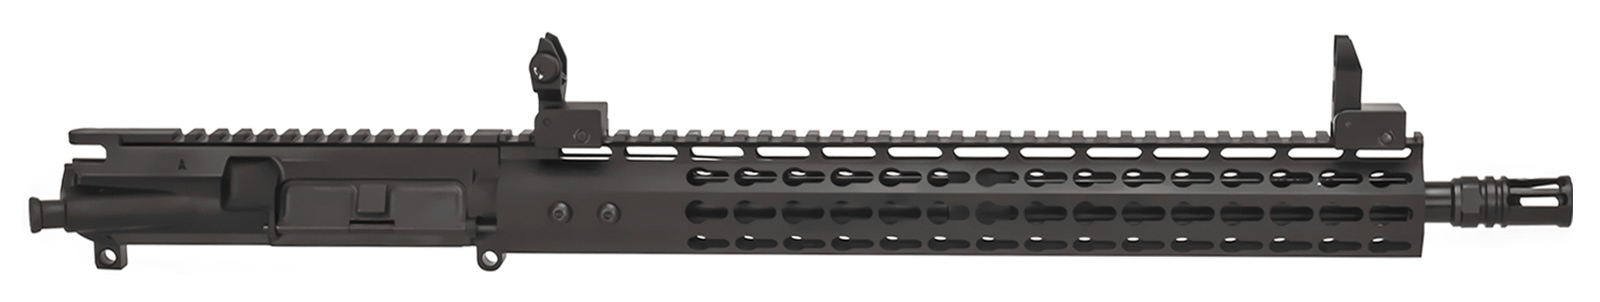 ar-15-upper-assembly-16-7-62x39-sight-150-550-15-cbc-keymod-ii-ar-15-handguard-rail